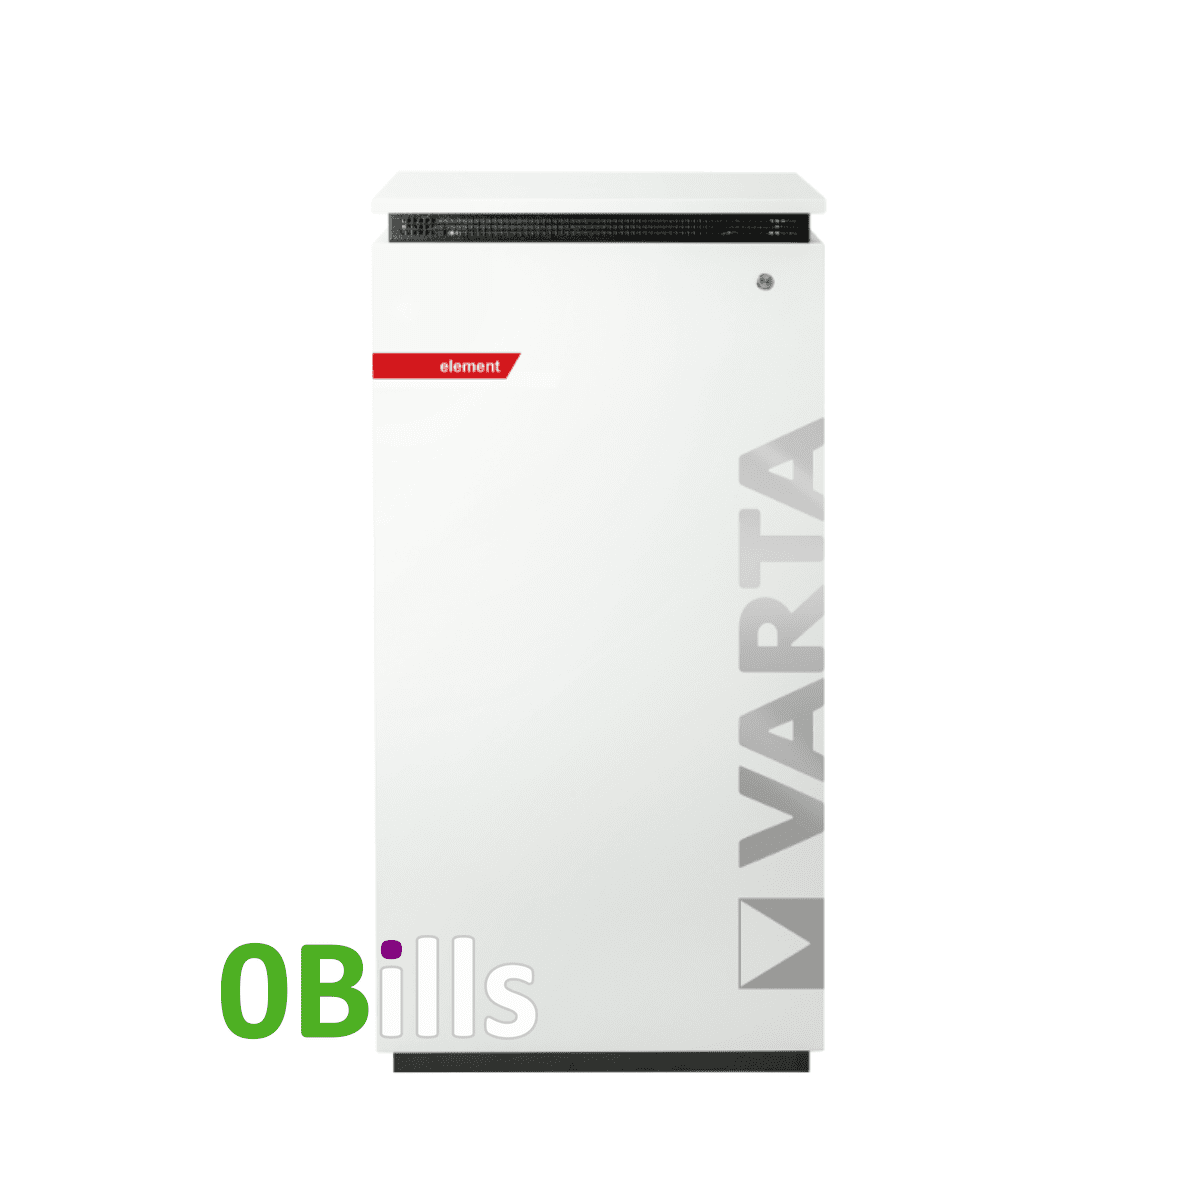 VARTA element 12 Battery Storage System 13 kWh 3Phase